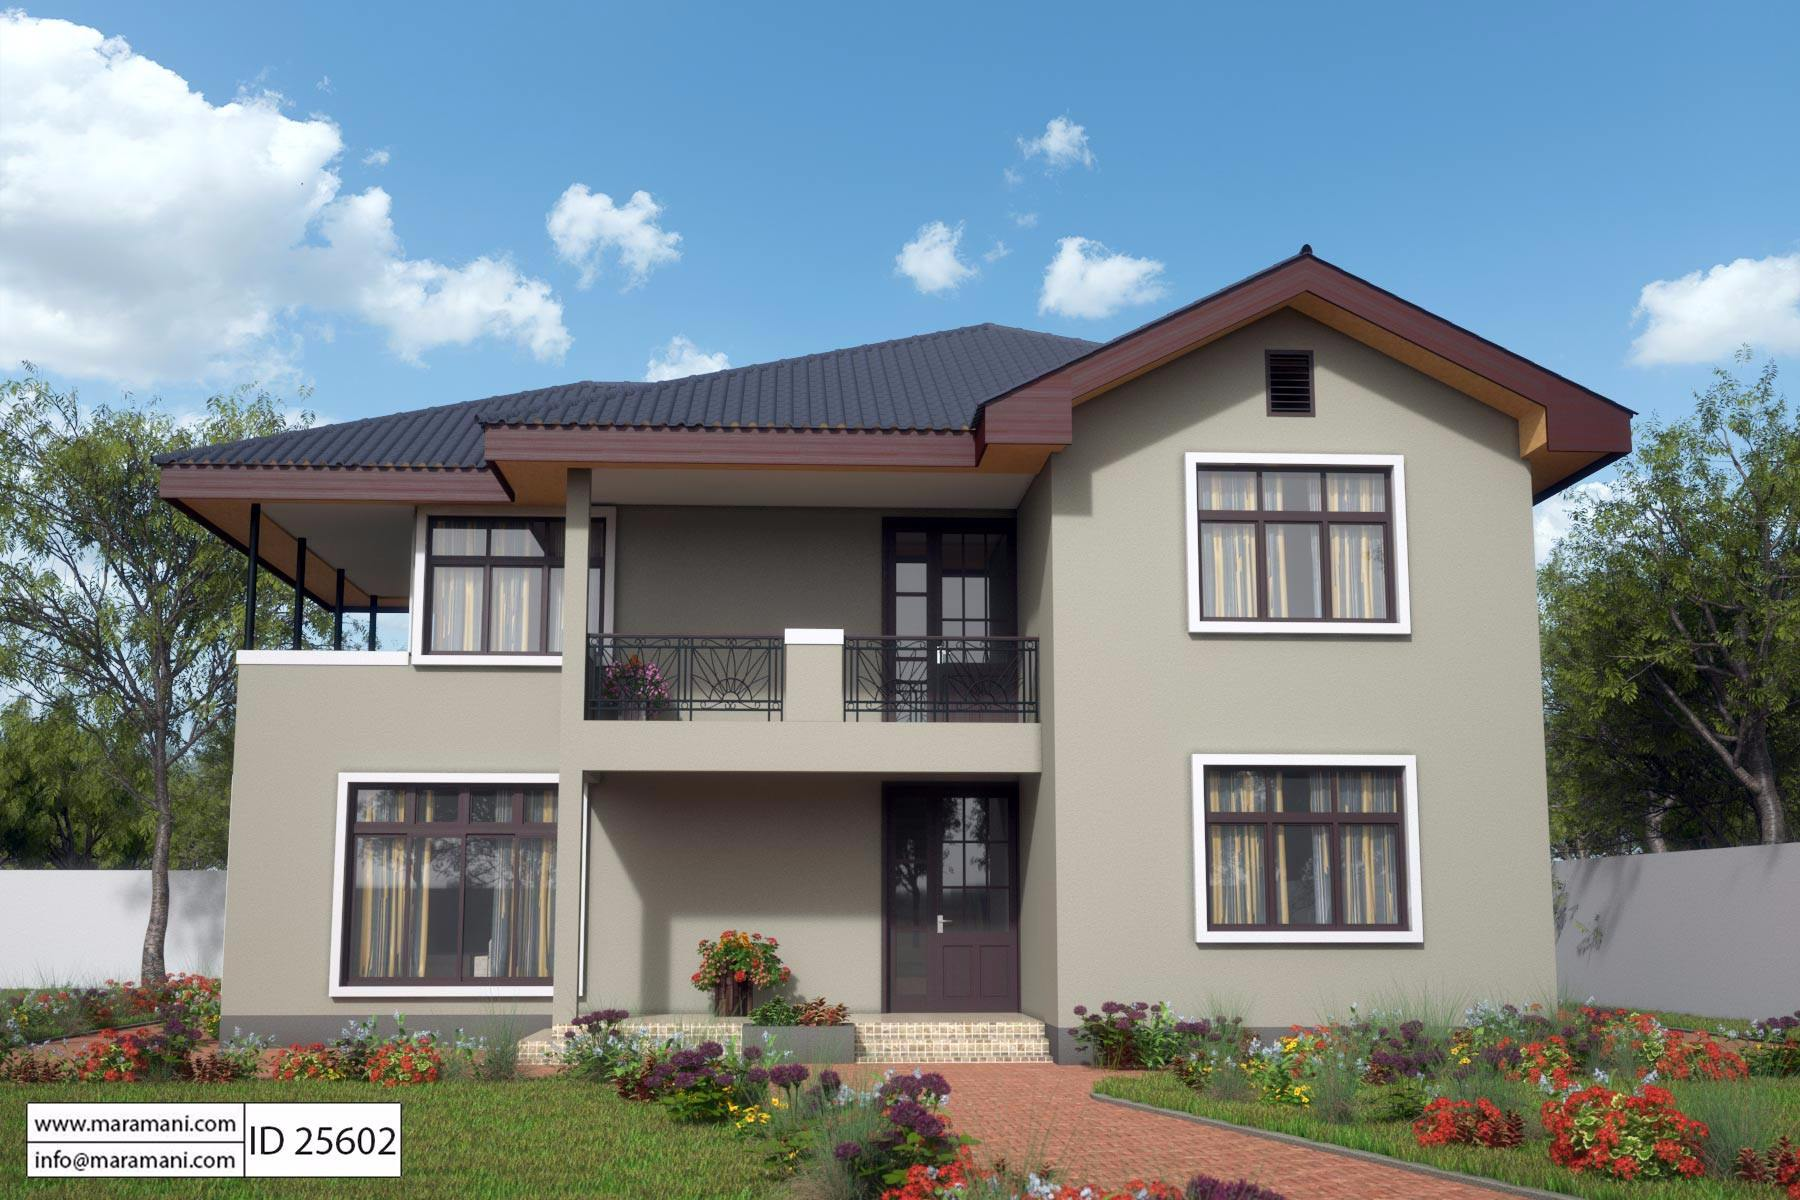 5 bedroom house design id 25602 house plans by maramani for Beautiful 5 bedroom house plans with pictures